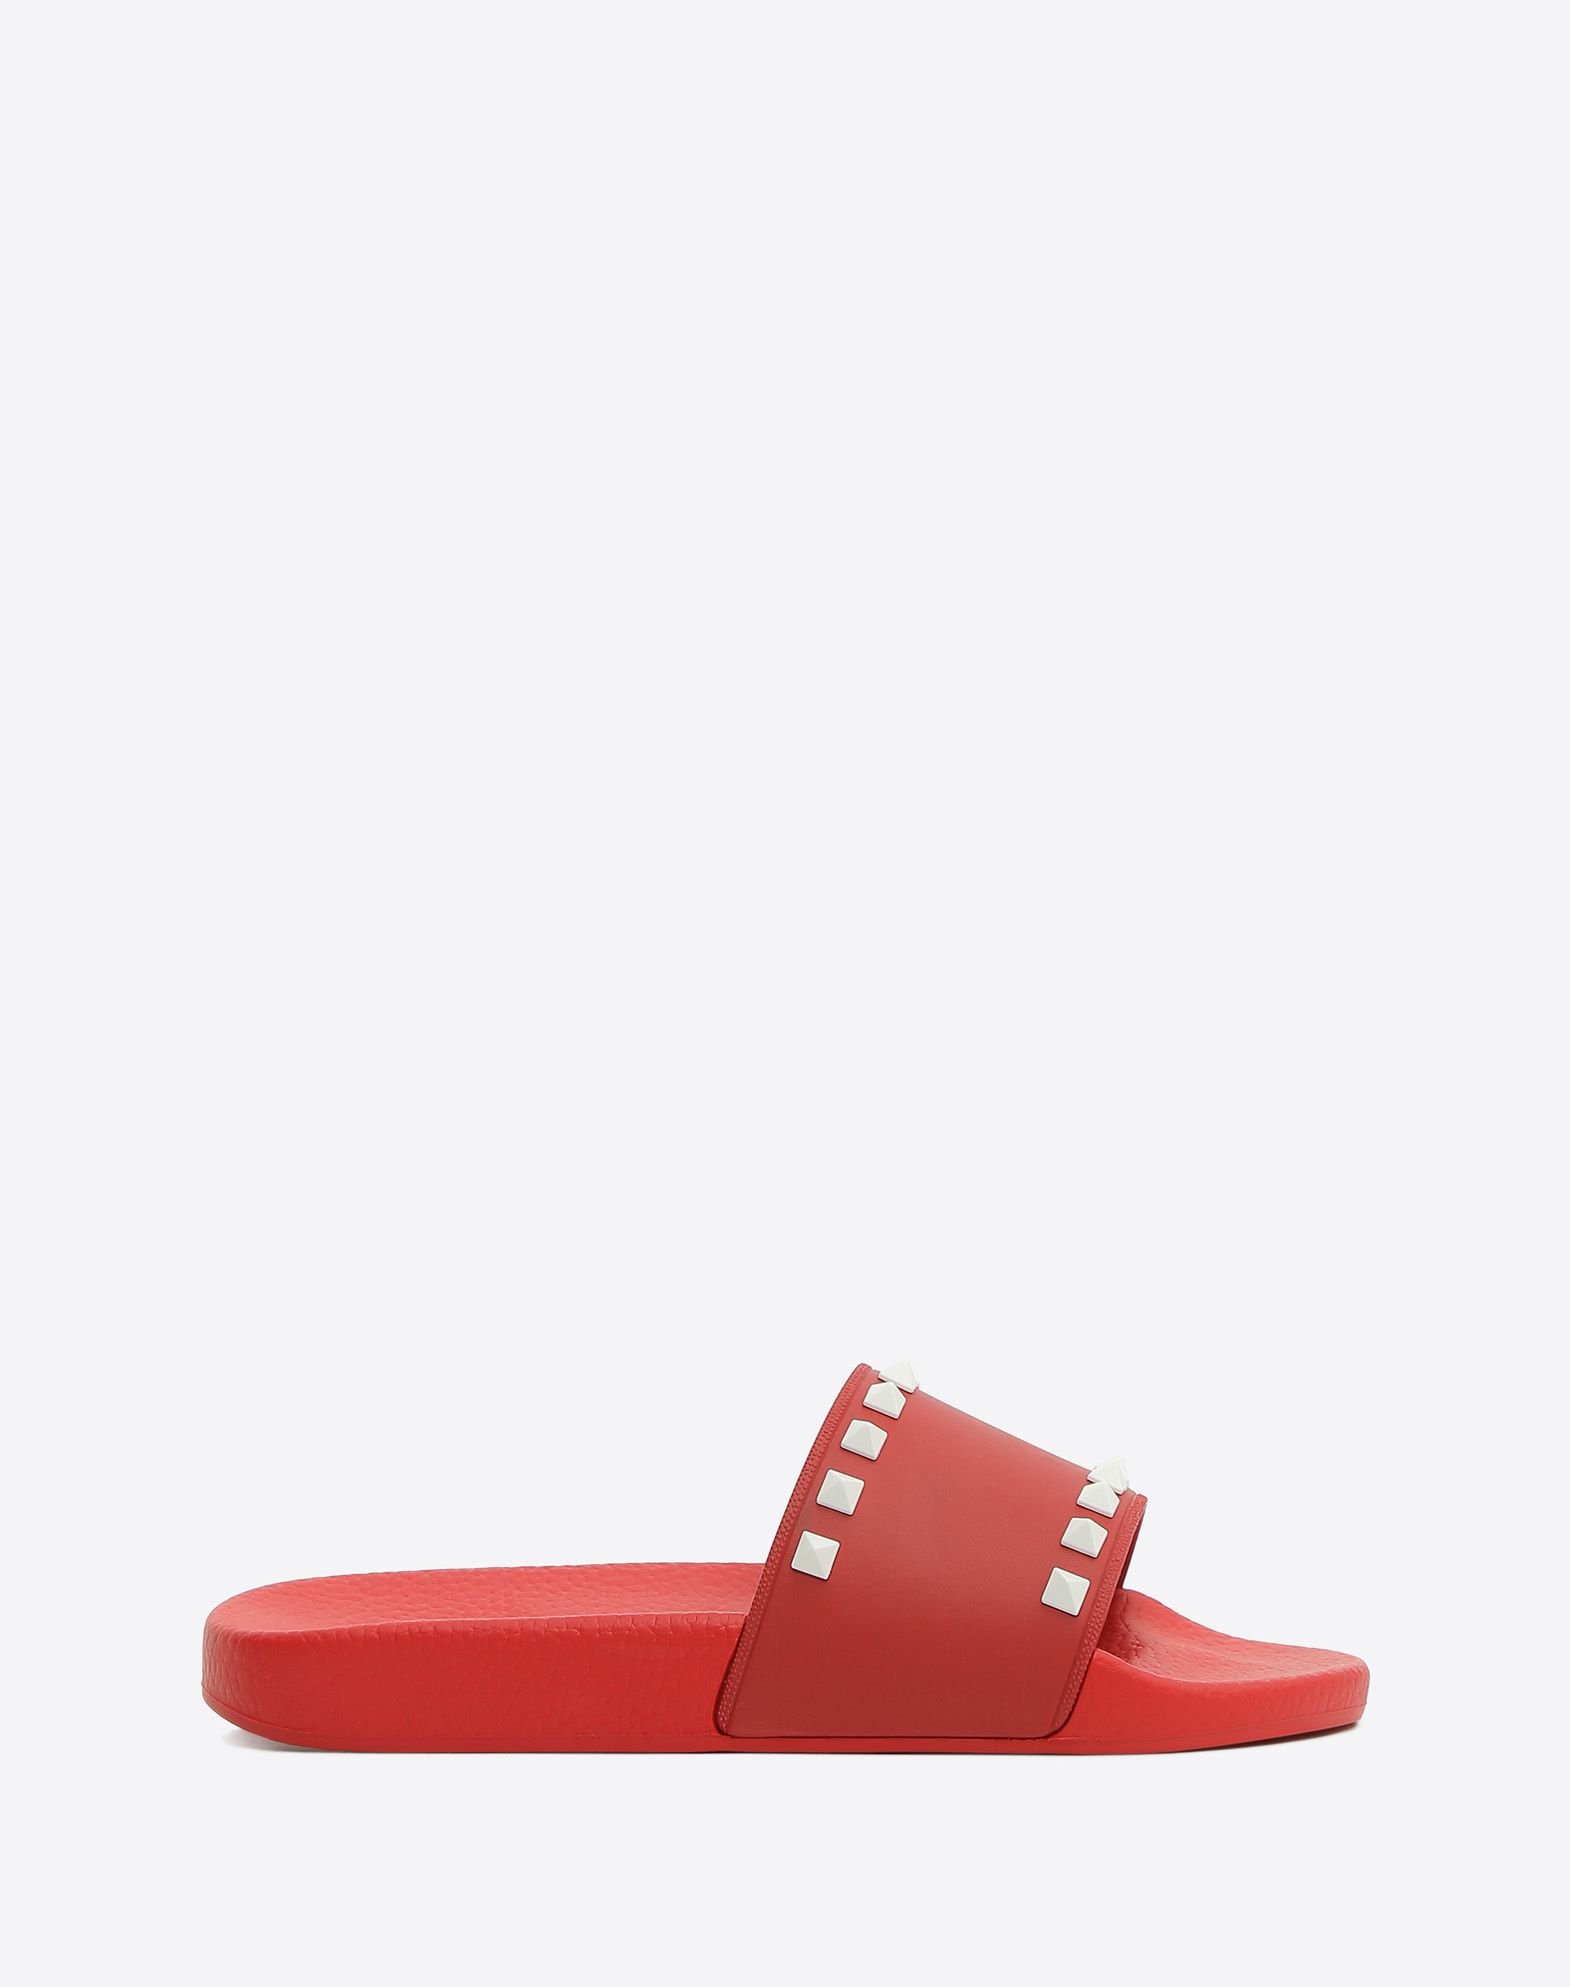 VALENTINO Studs Solid color Rubber sole  45379661ug